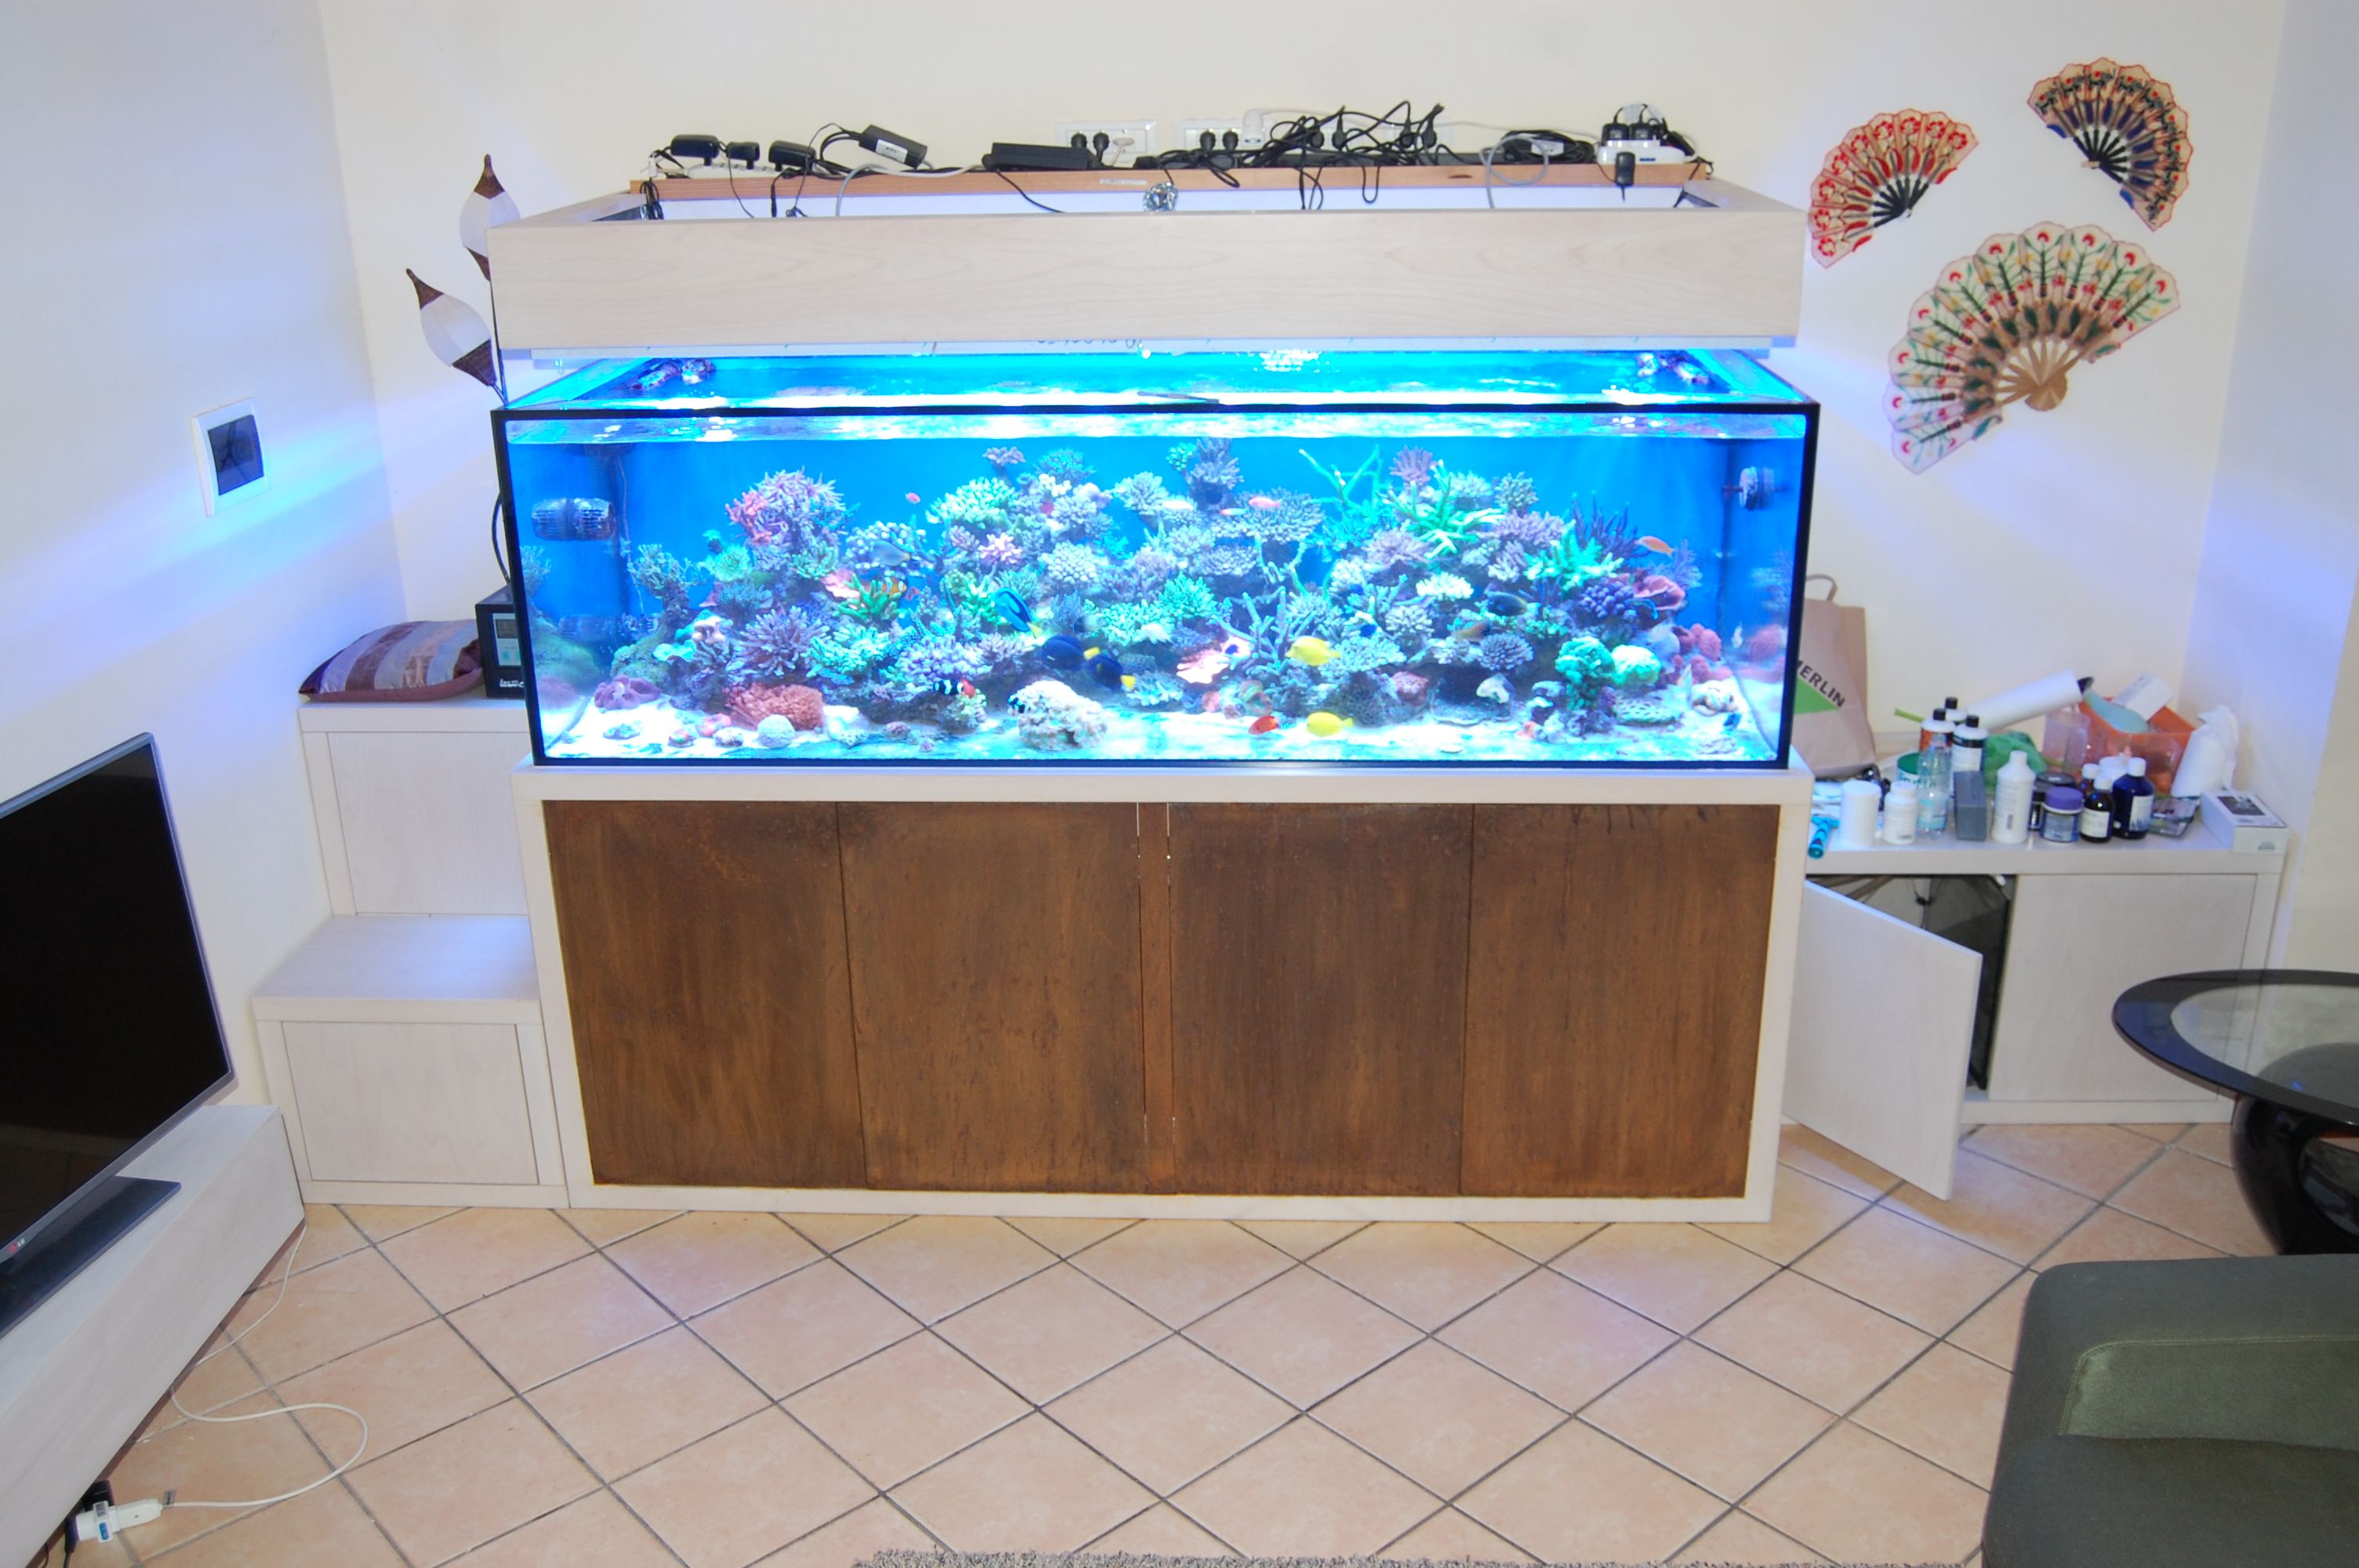 Tavolino Acquario ~ 17 best images about made to measure furniture mobili su misura